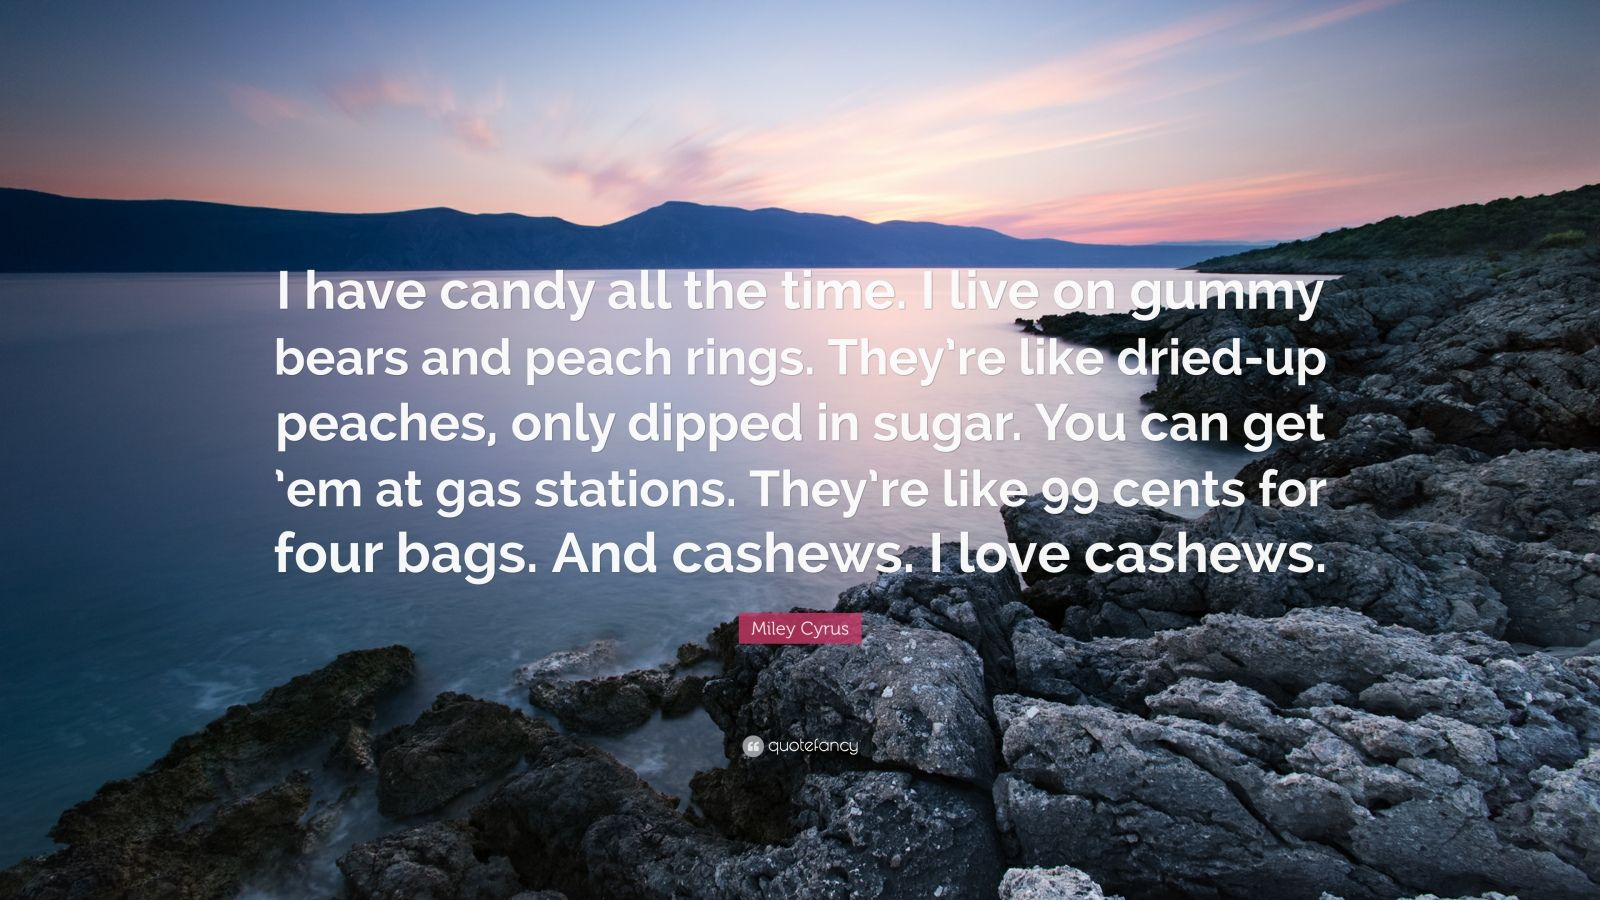 "Miley Cyrus Quote: ""I have candy all the time. I live on gummy bears and peach rings. They're like dried-up peaches, only dipped in sugar. You can get 'em at gas stations. They're like 99 cents for four bags. And cashews. I love cashews."""